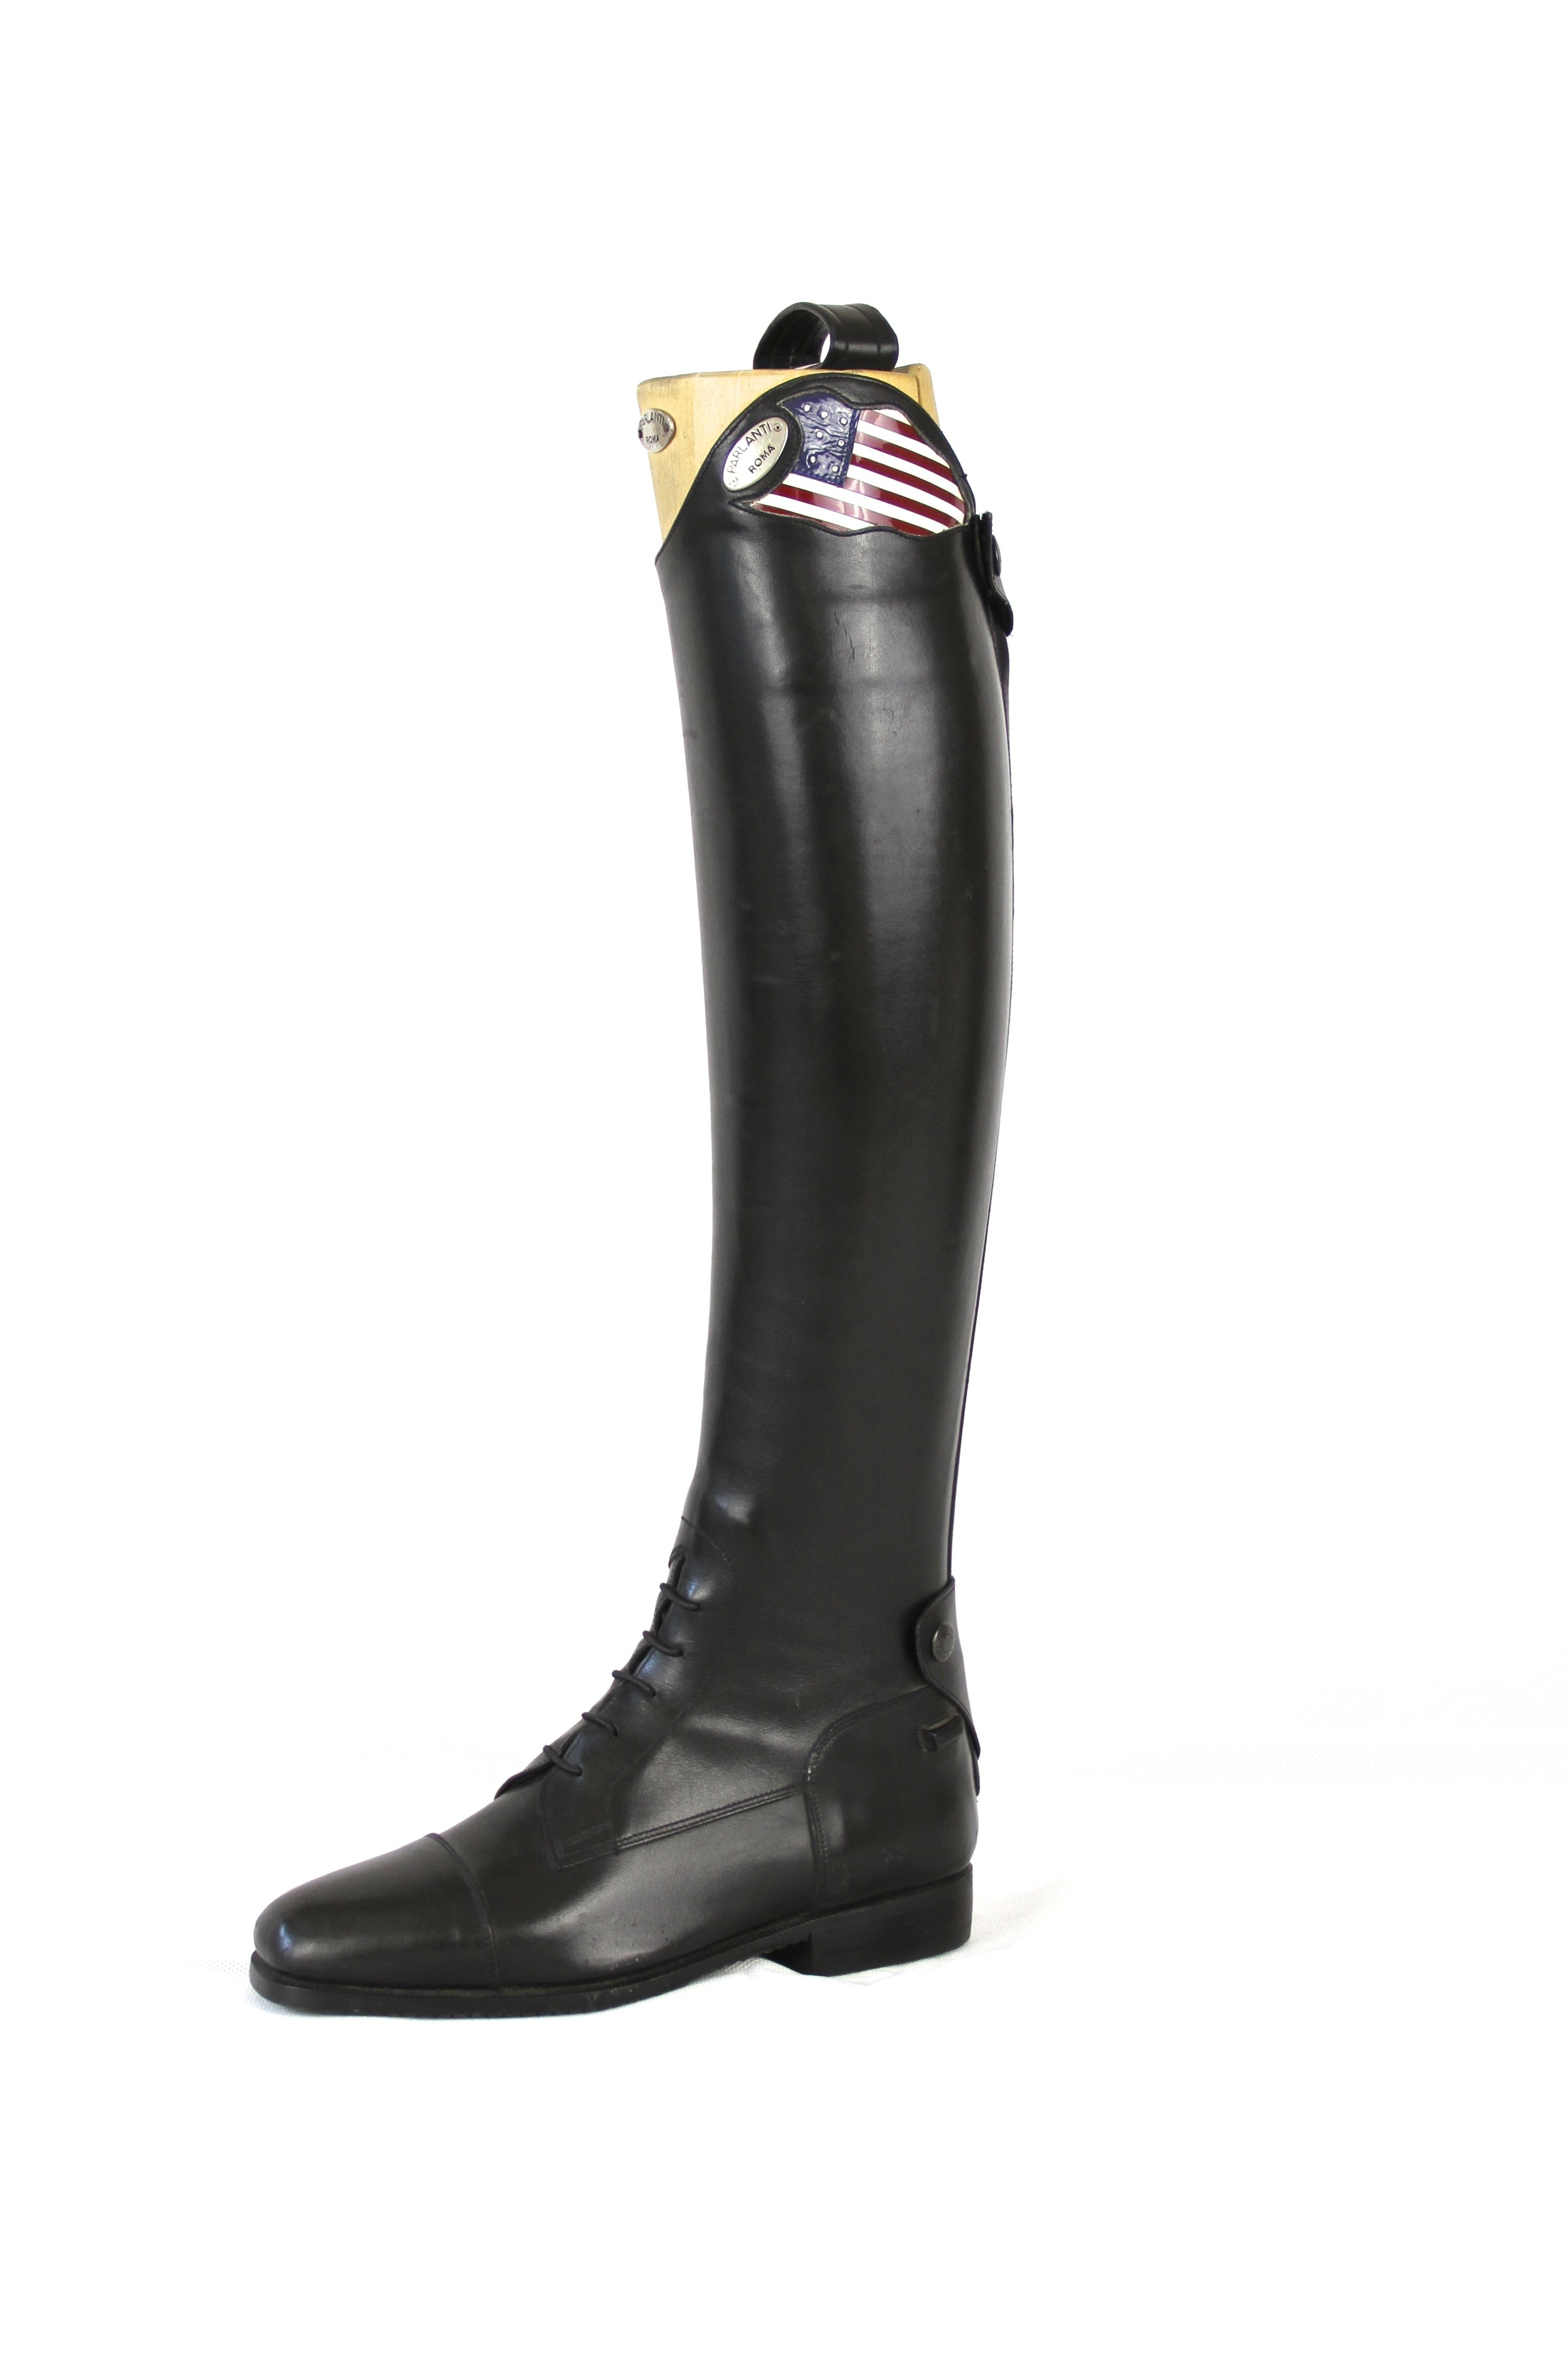 Parlanti American Flag With Swaroski Stars Boots Rubber Rain Boots Equestrian Boots